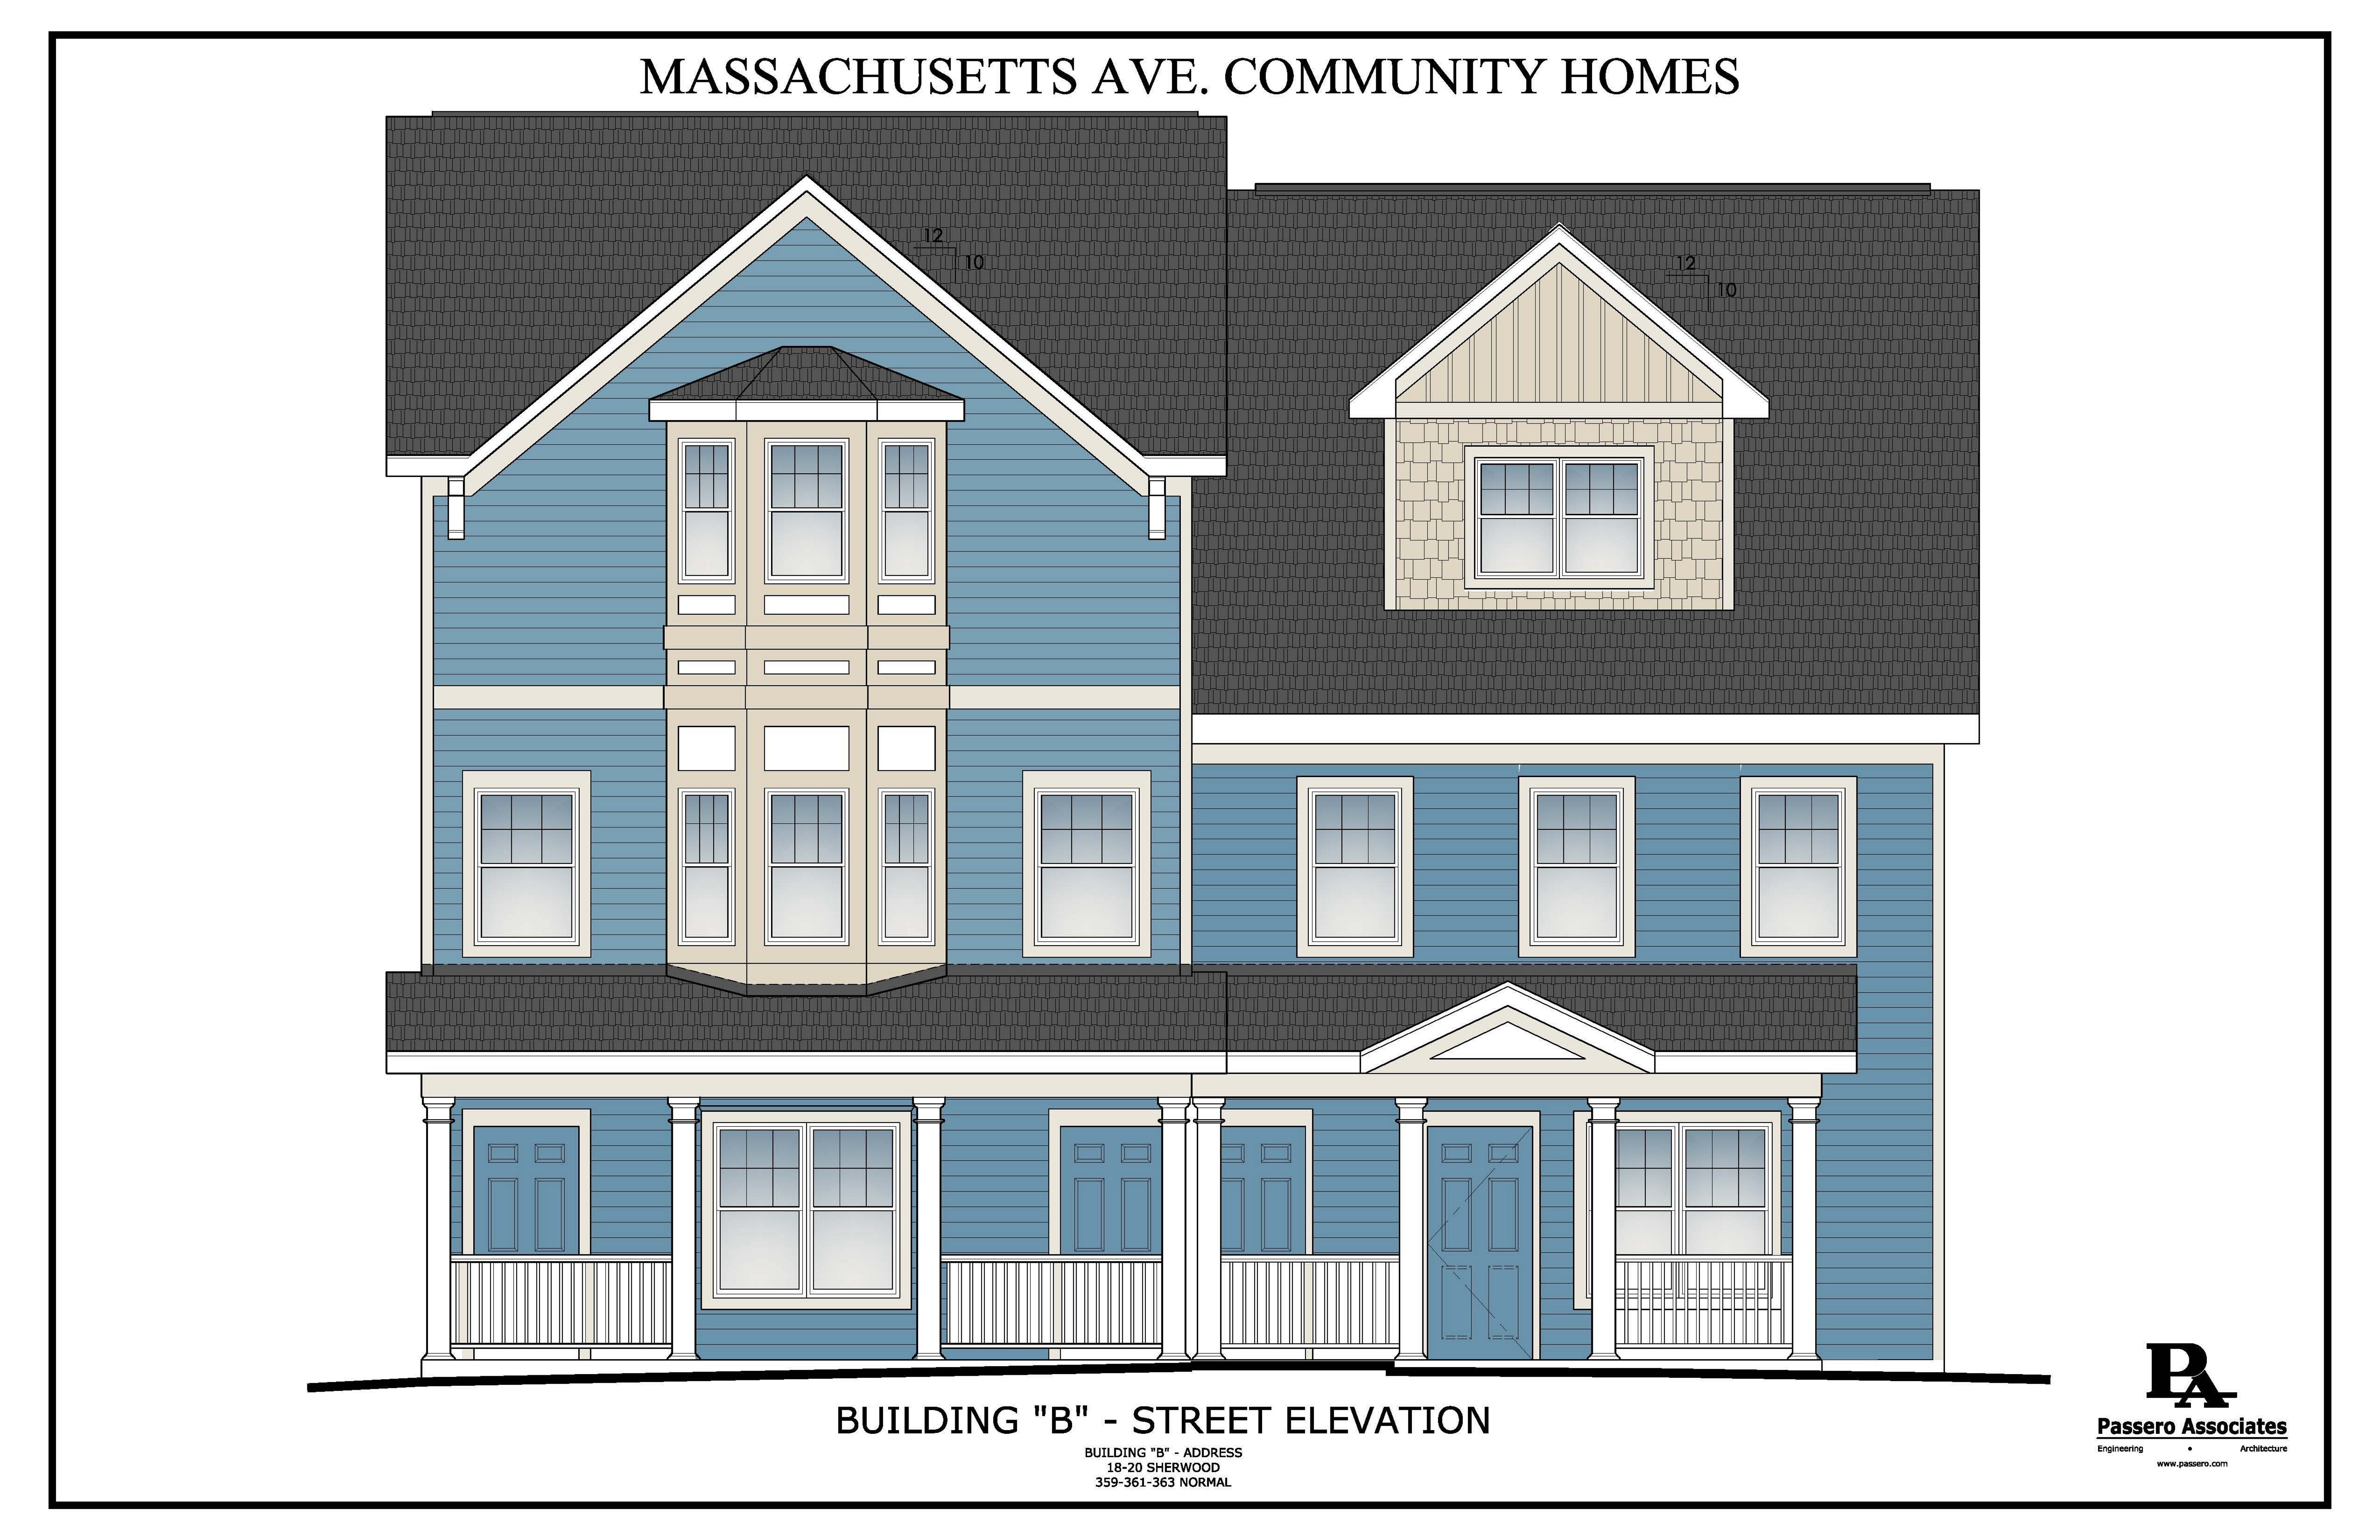 Rendering from PUSH Buffalo shows Massachusetts Avenue Community Homes, part of its plan to construct 46 affordable, energy-efficient West Side apartments. Included are nine new structures and seven renovations, mostly long-vacant sites.